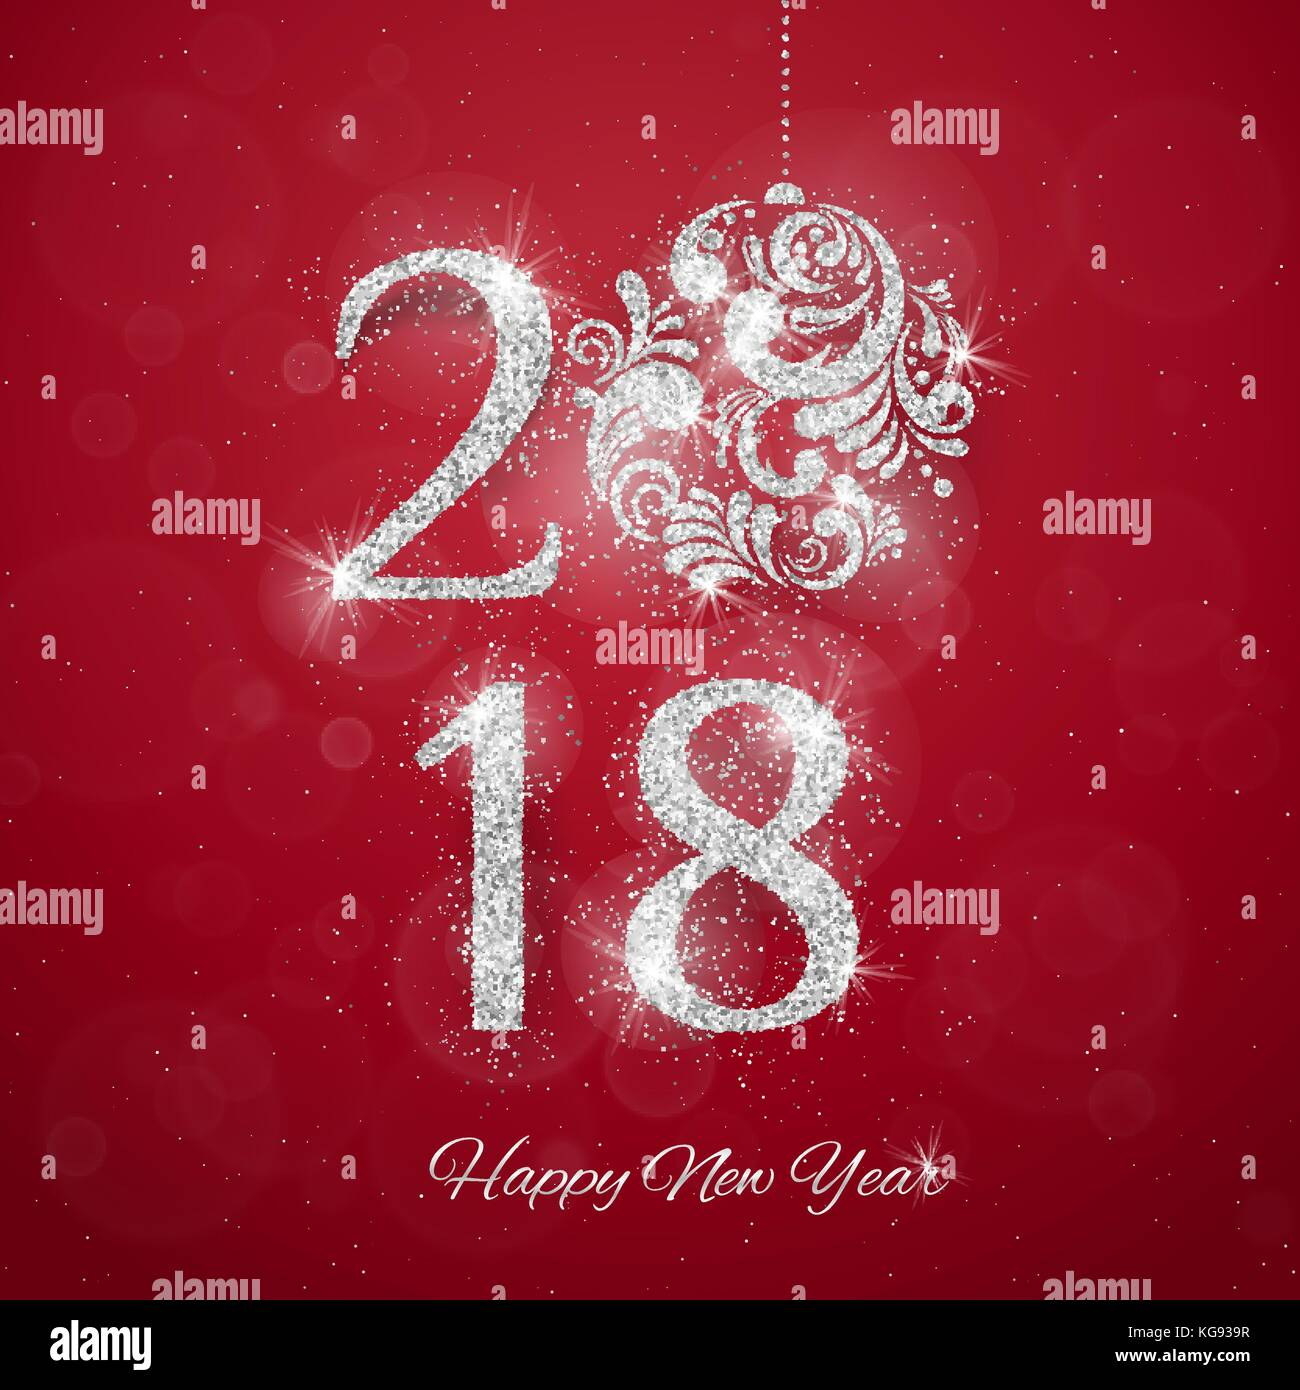 2018 happy new year background with silver glitter numbers on red background vector new year holiday banner